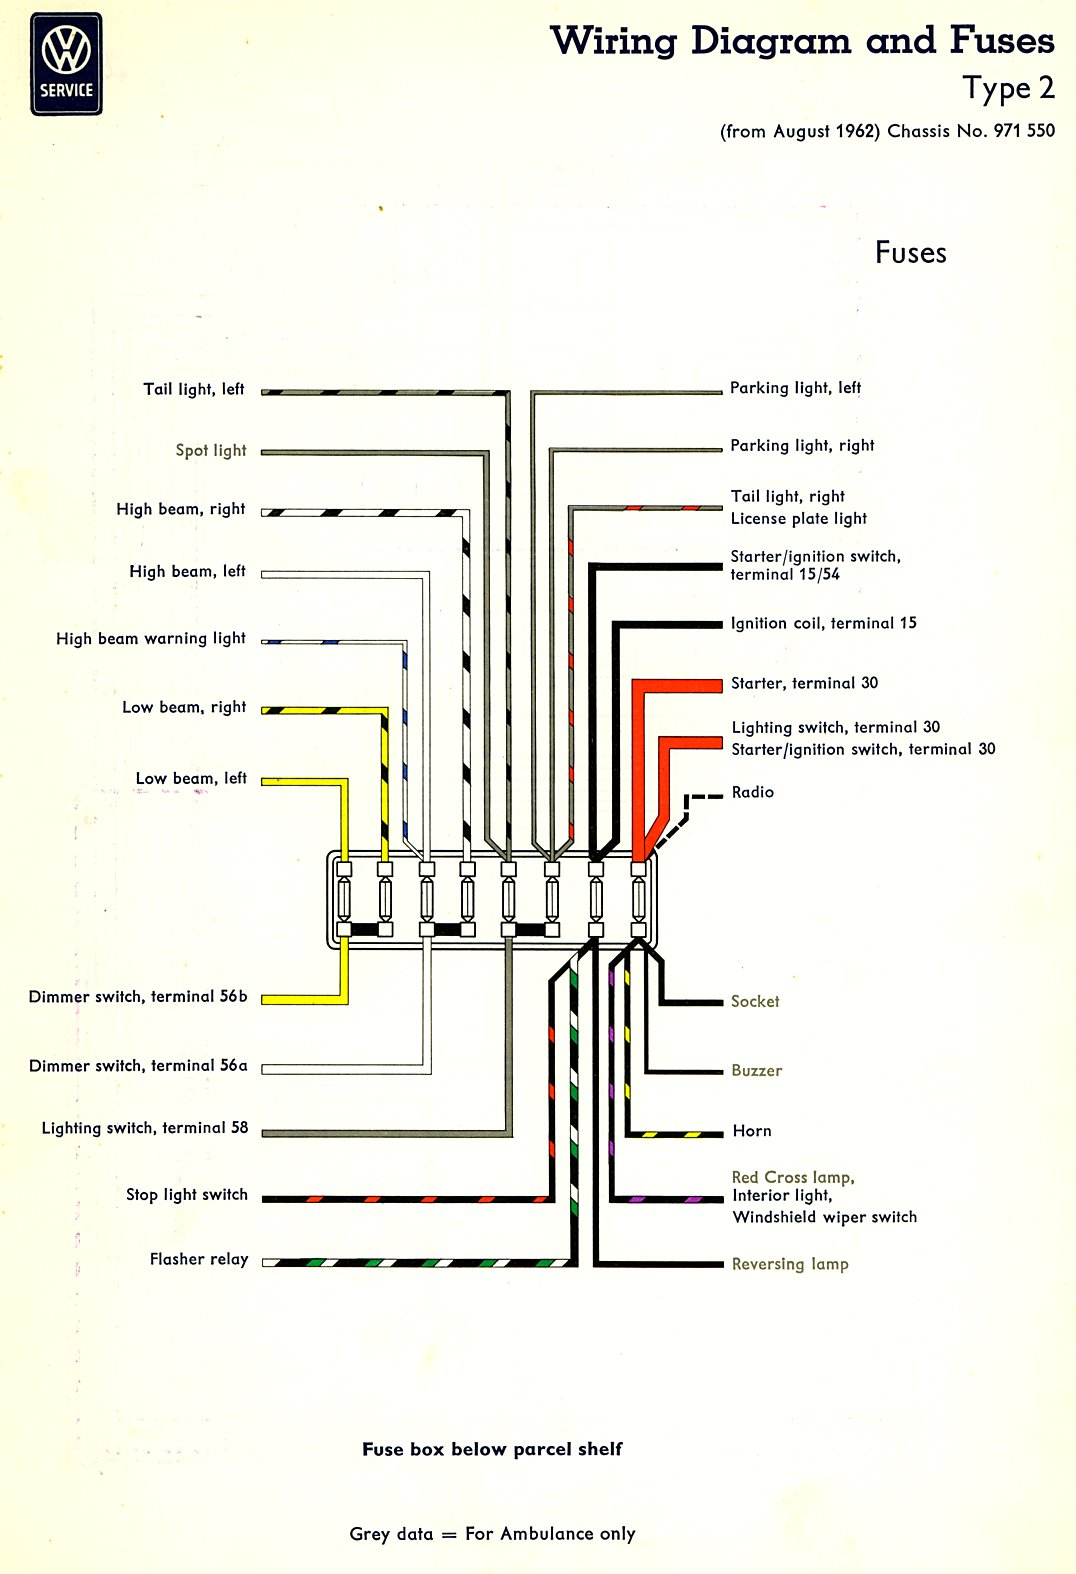 bus_63_fuses thesamba com type 2 wiring diagrams 1978 vw bus fuse box diagram at bayanpartner.co